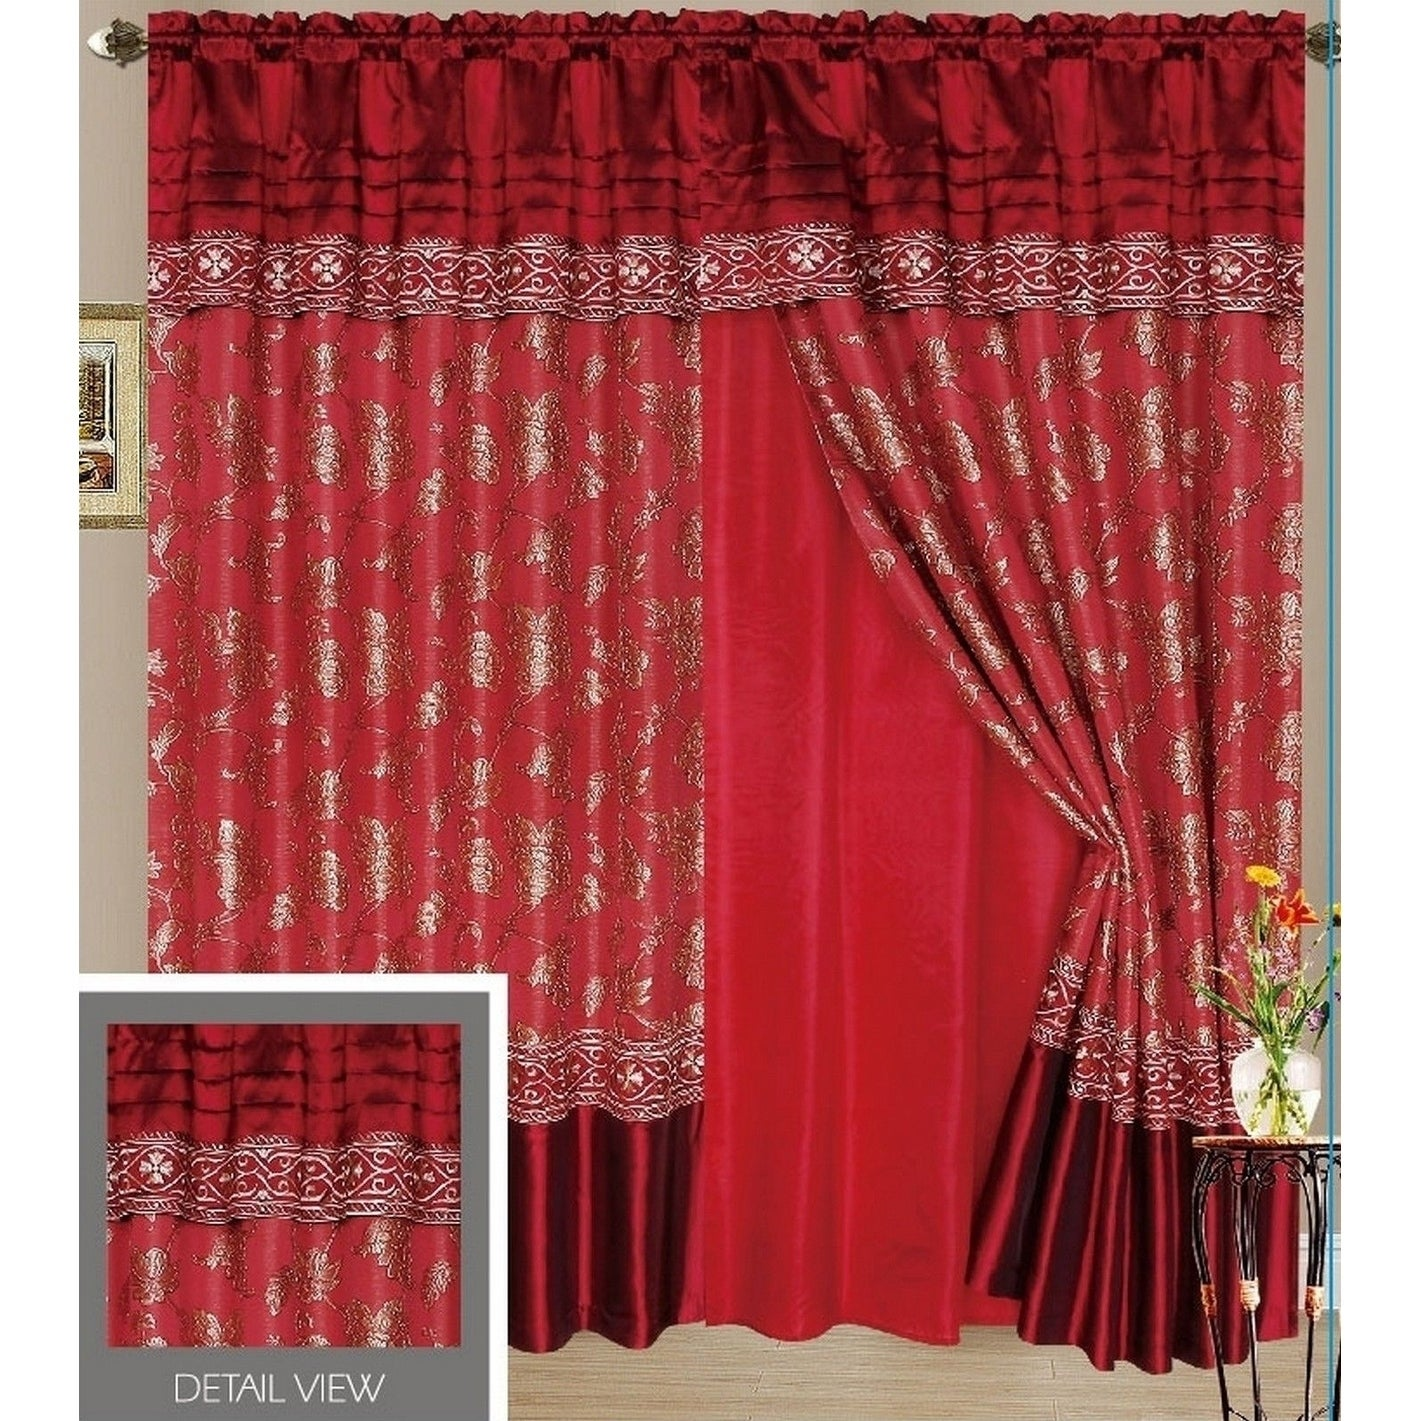 Fagor Luxury Lined Curtain Drapes Set and Valance Window ...